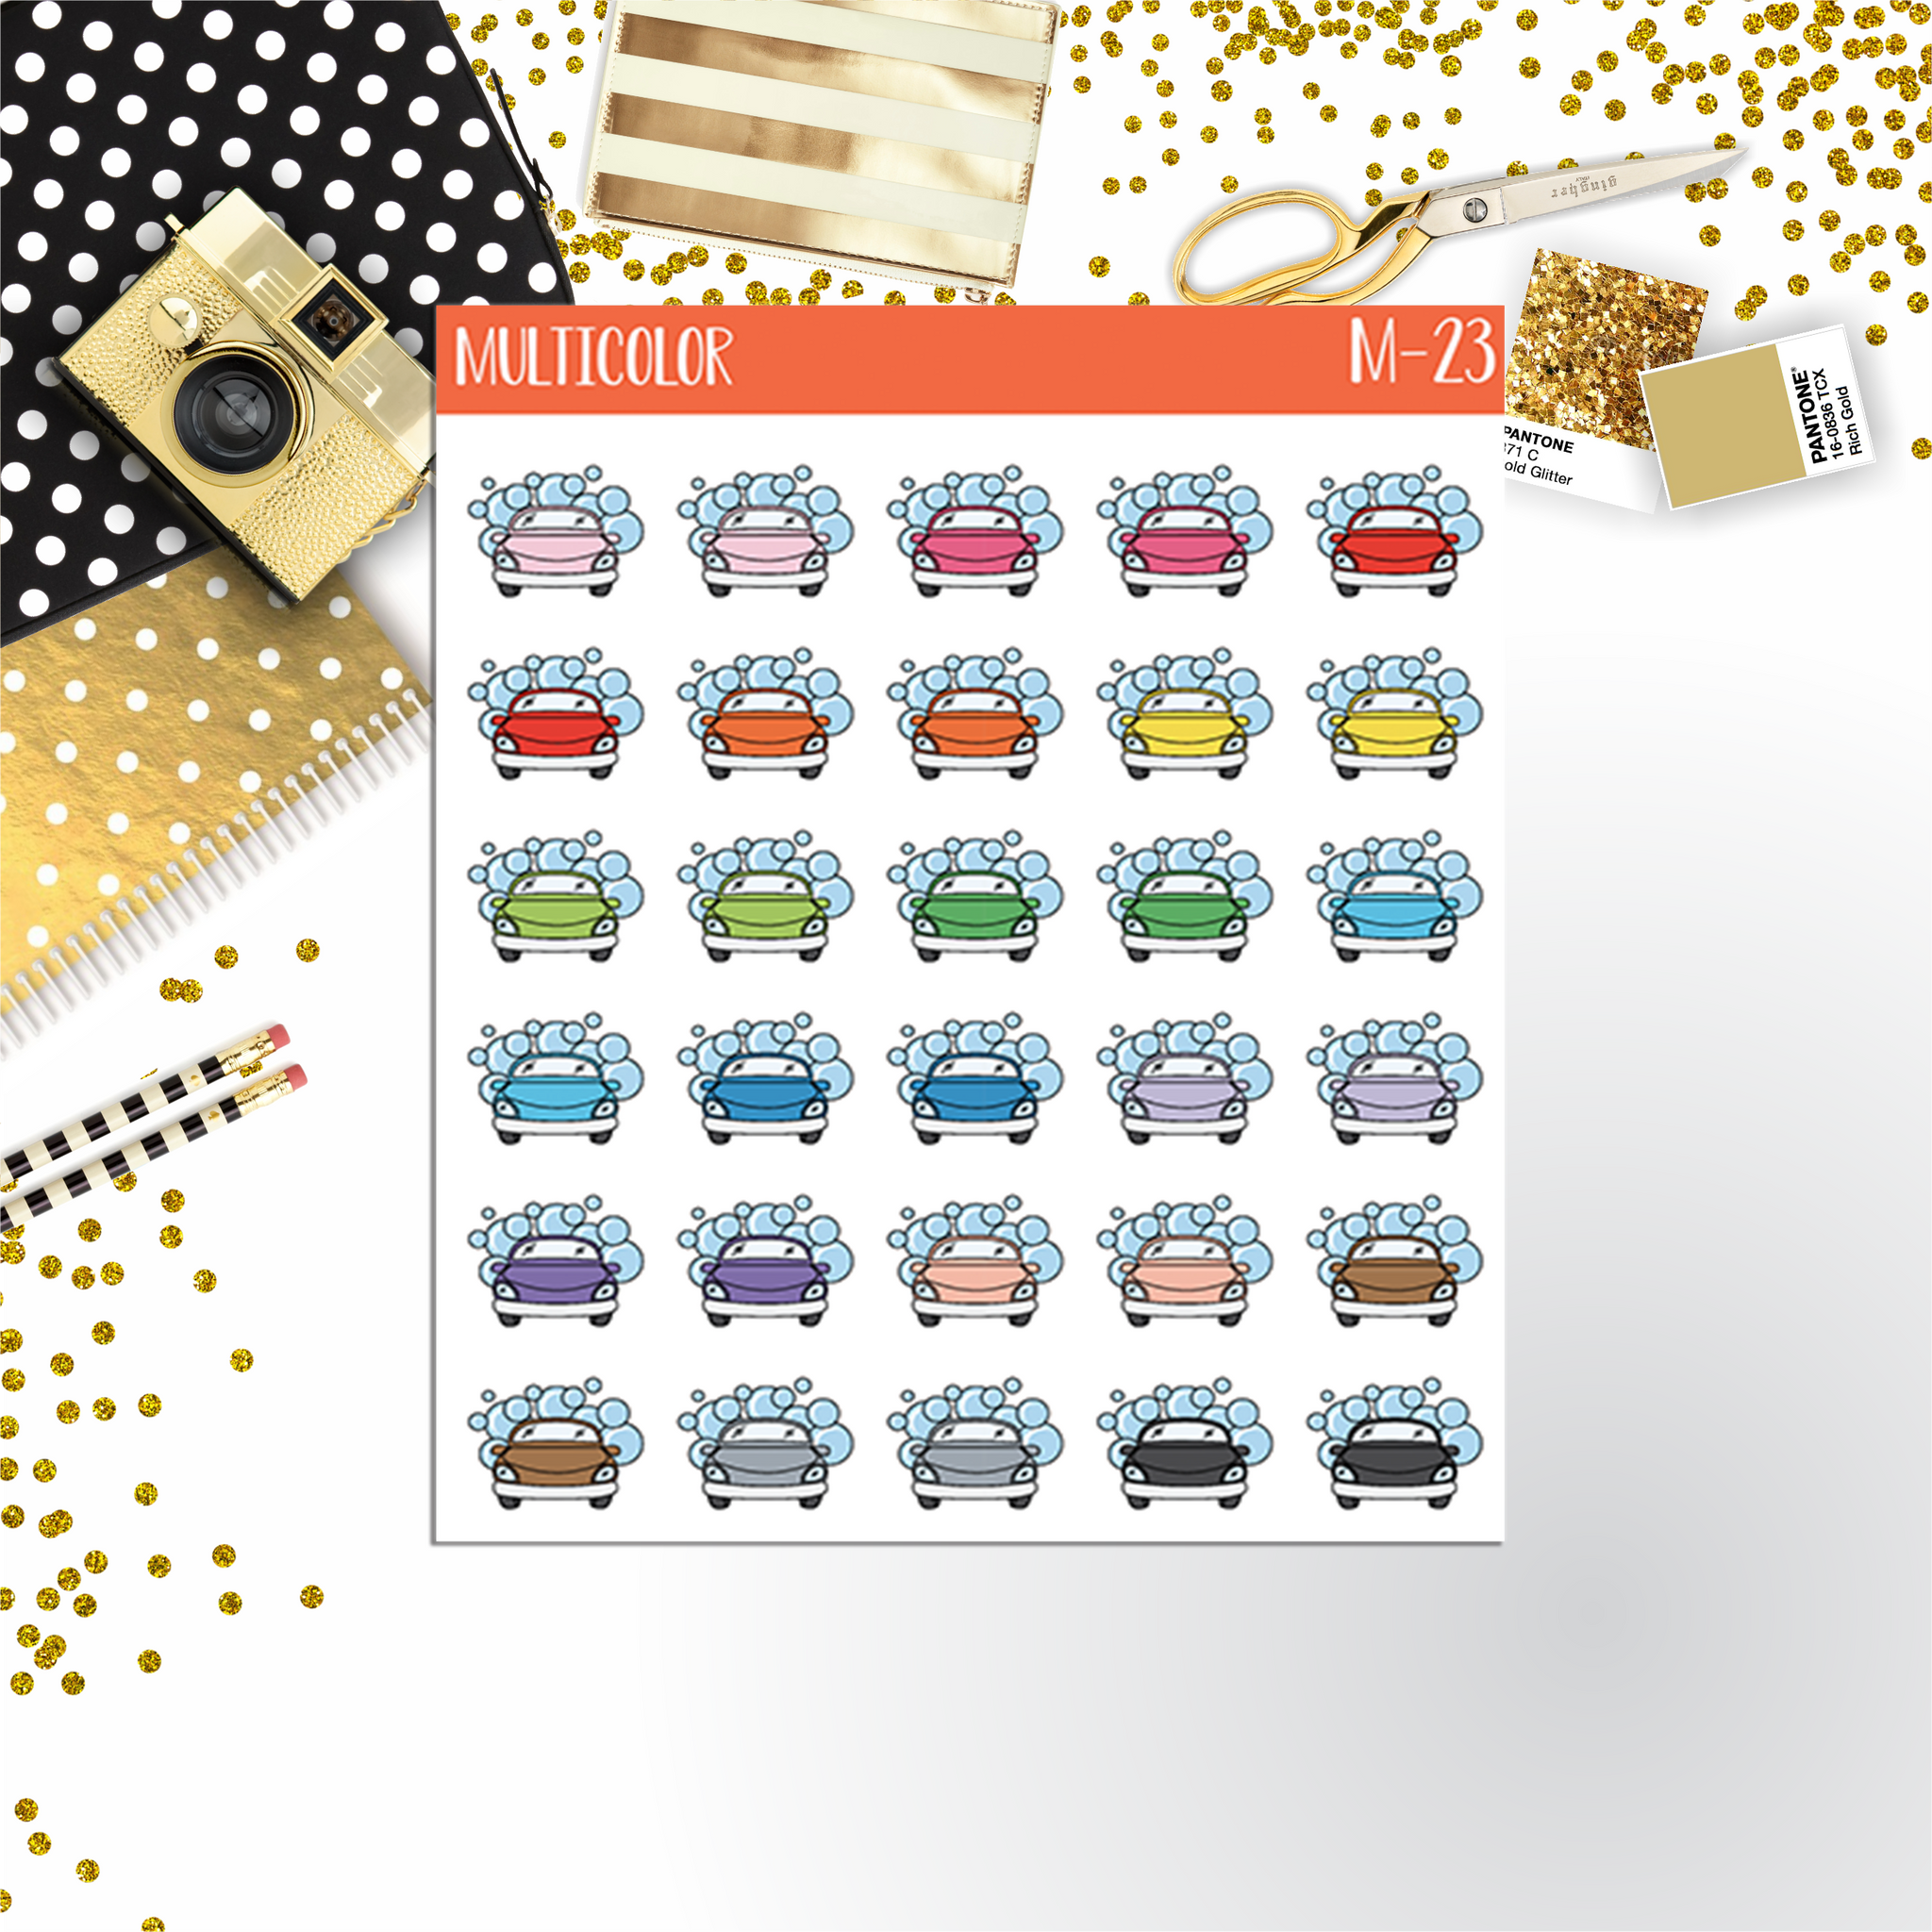 WASH CAR planner stickers || M-23 - CinderellaPaper